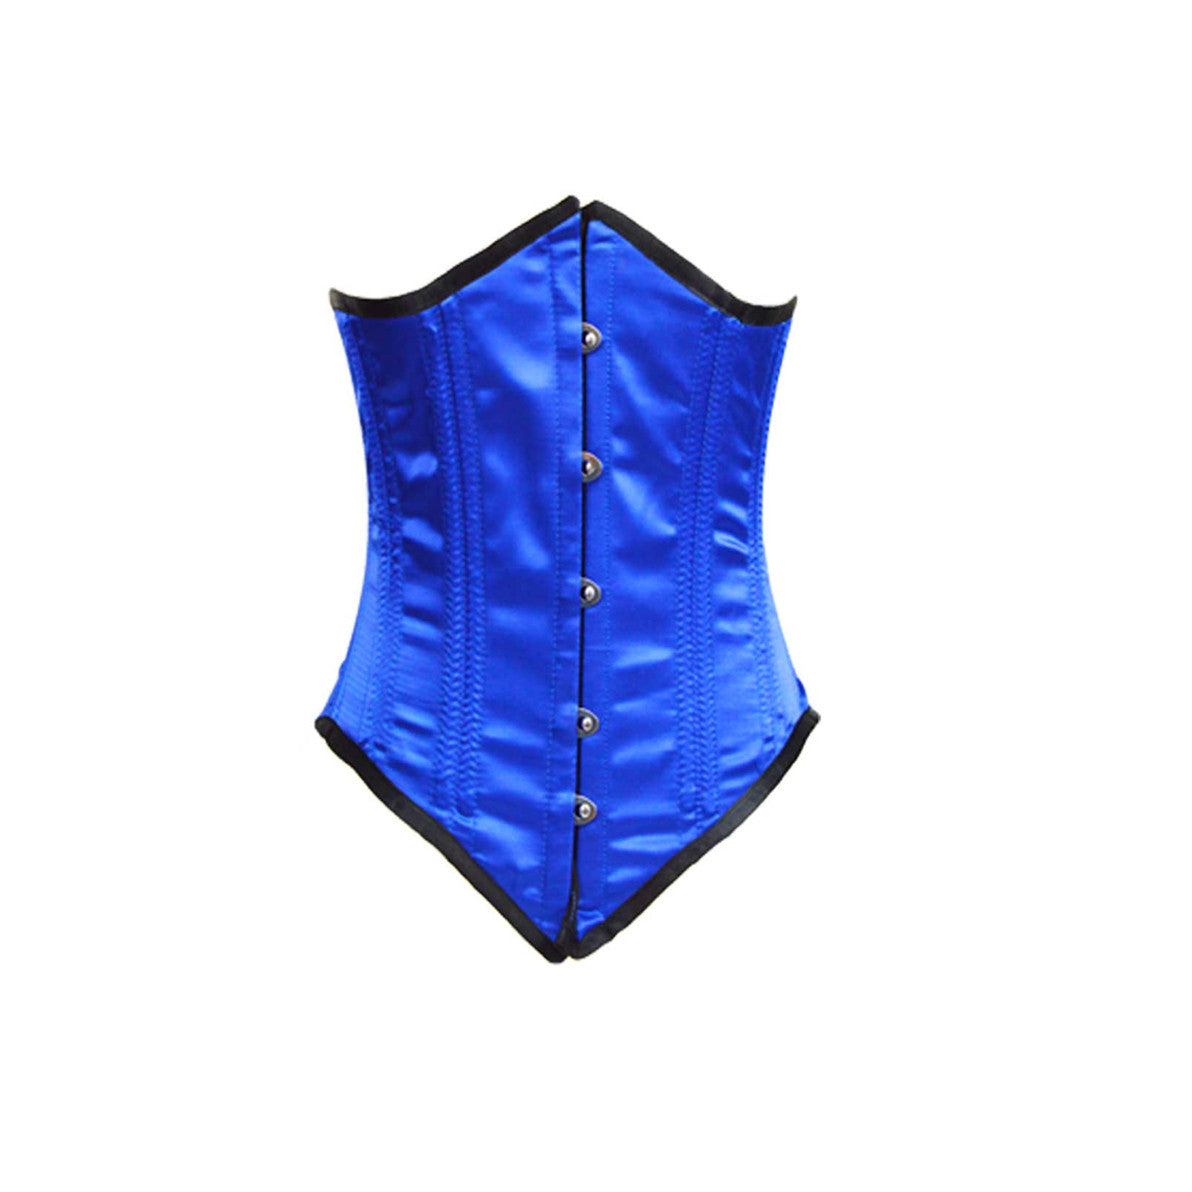 LADIES BLUE SATIN CORSET